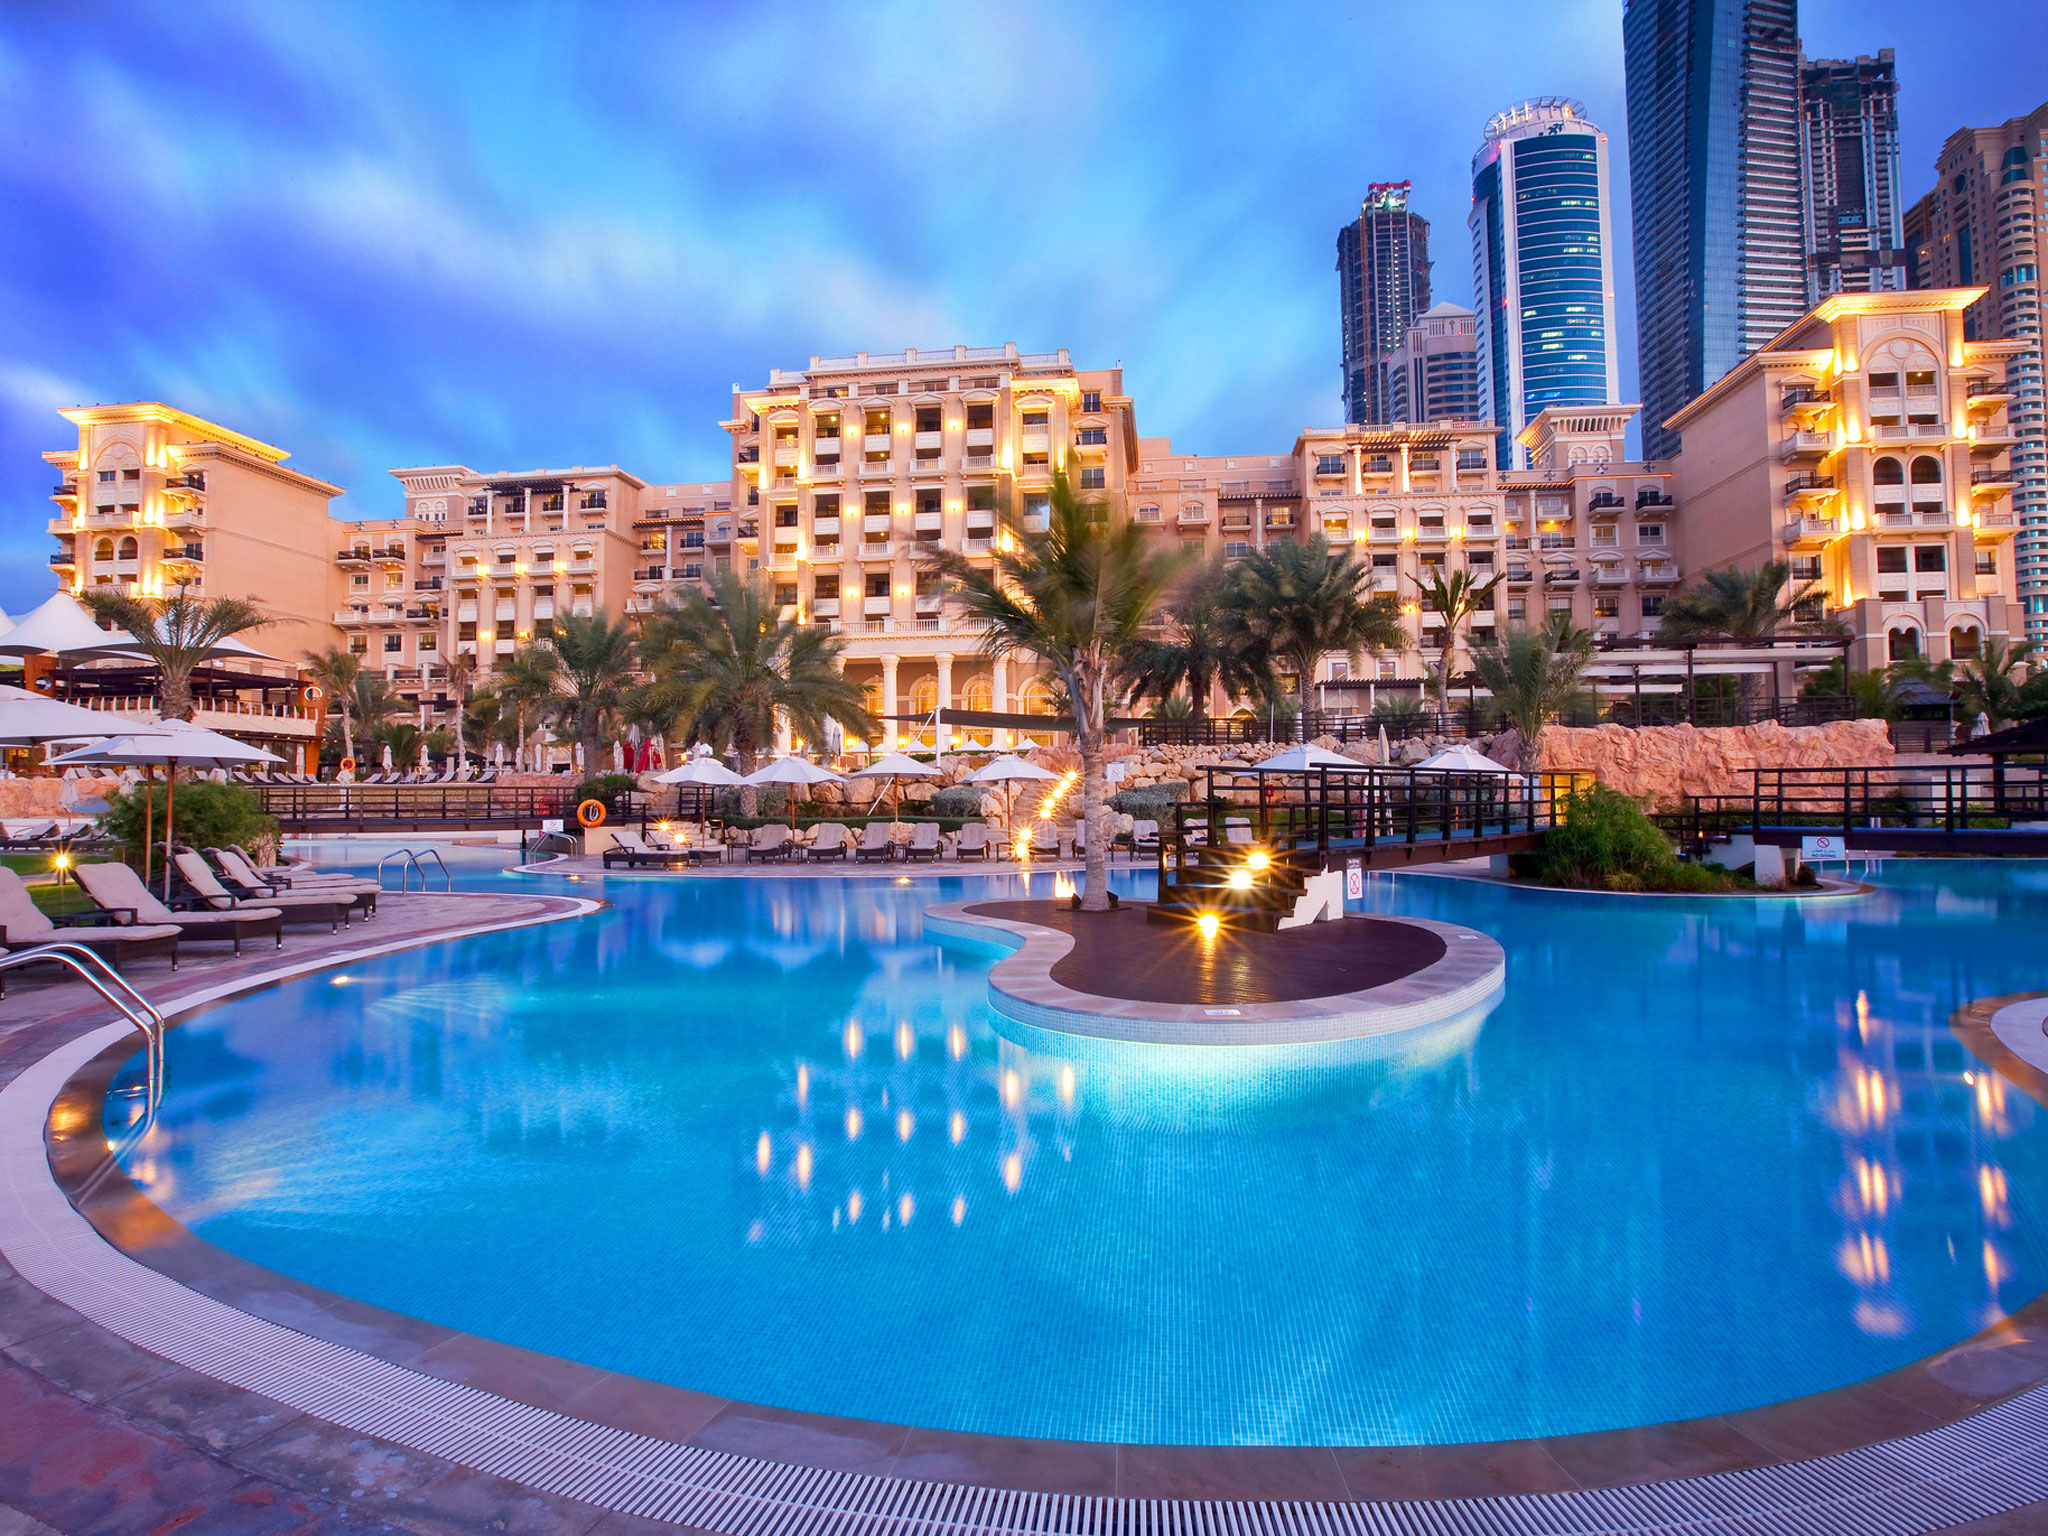 Dubai attractions dubai marina resort westin mina seyahi for Dubai beach hotels